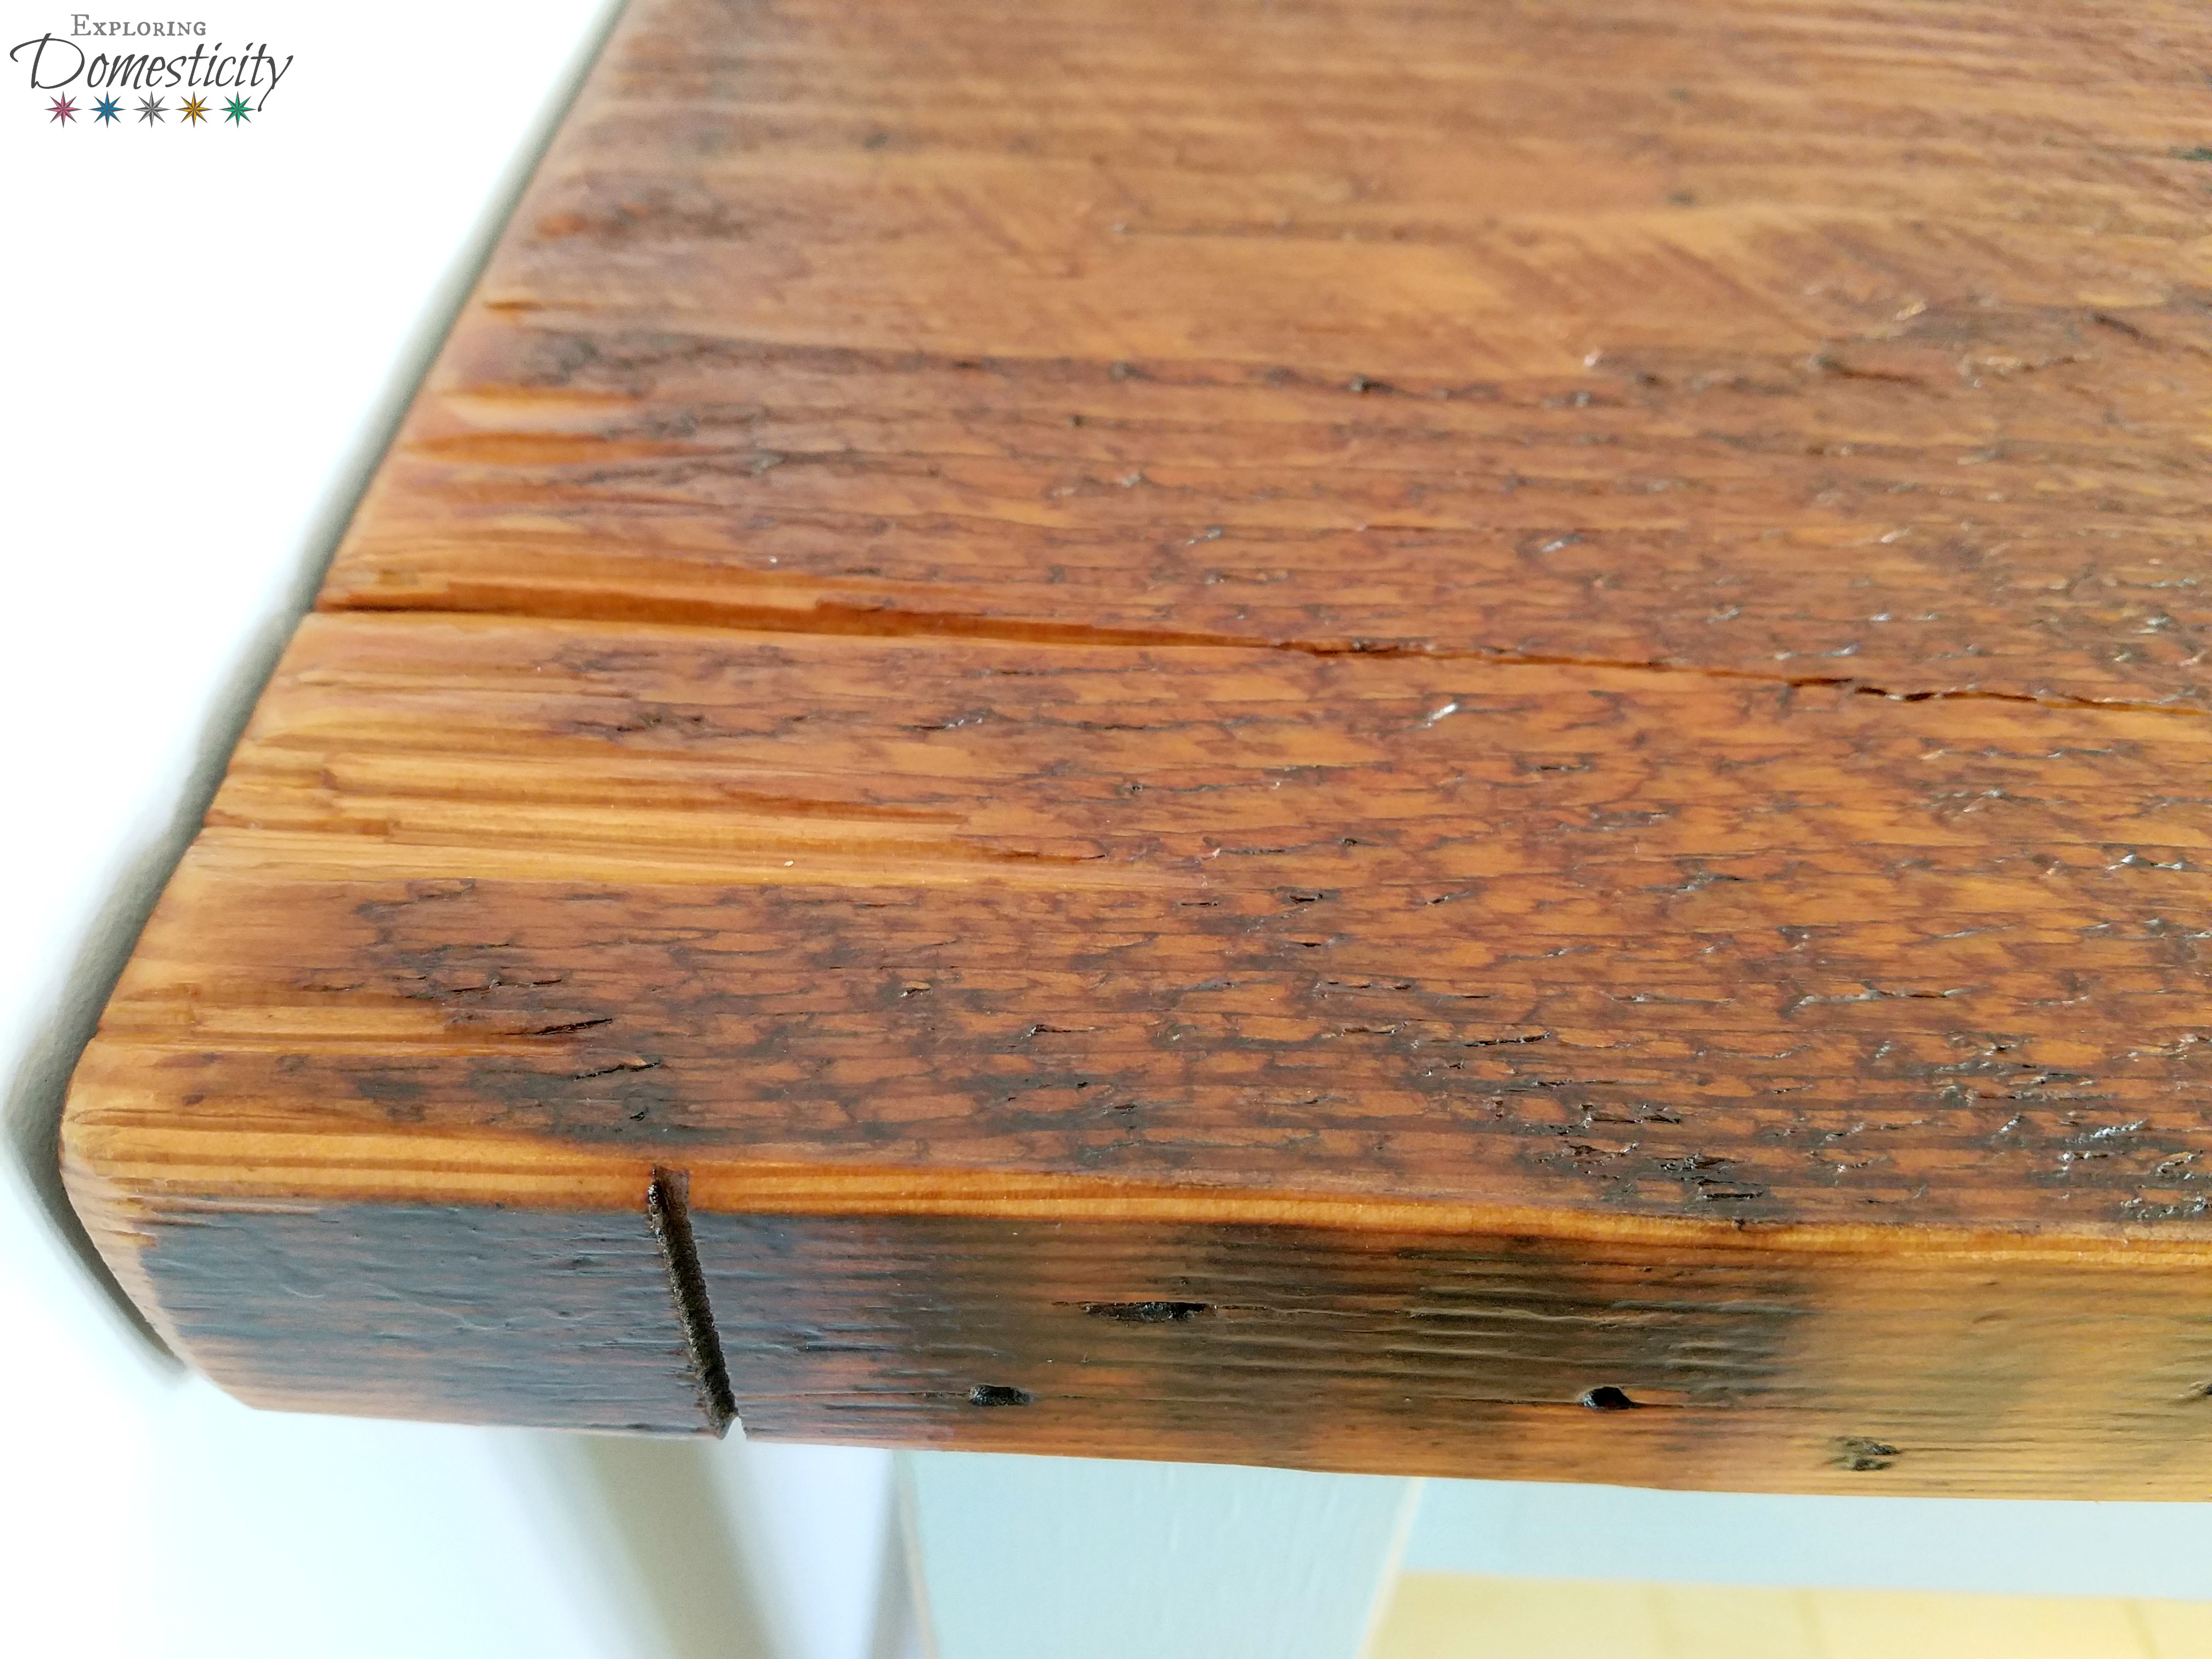 Farmhouse Tables With Gorgeous Reclaimed Wood U2013 Floor Joists From 1800s  Building